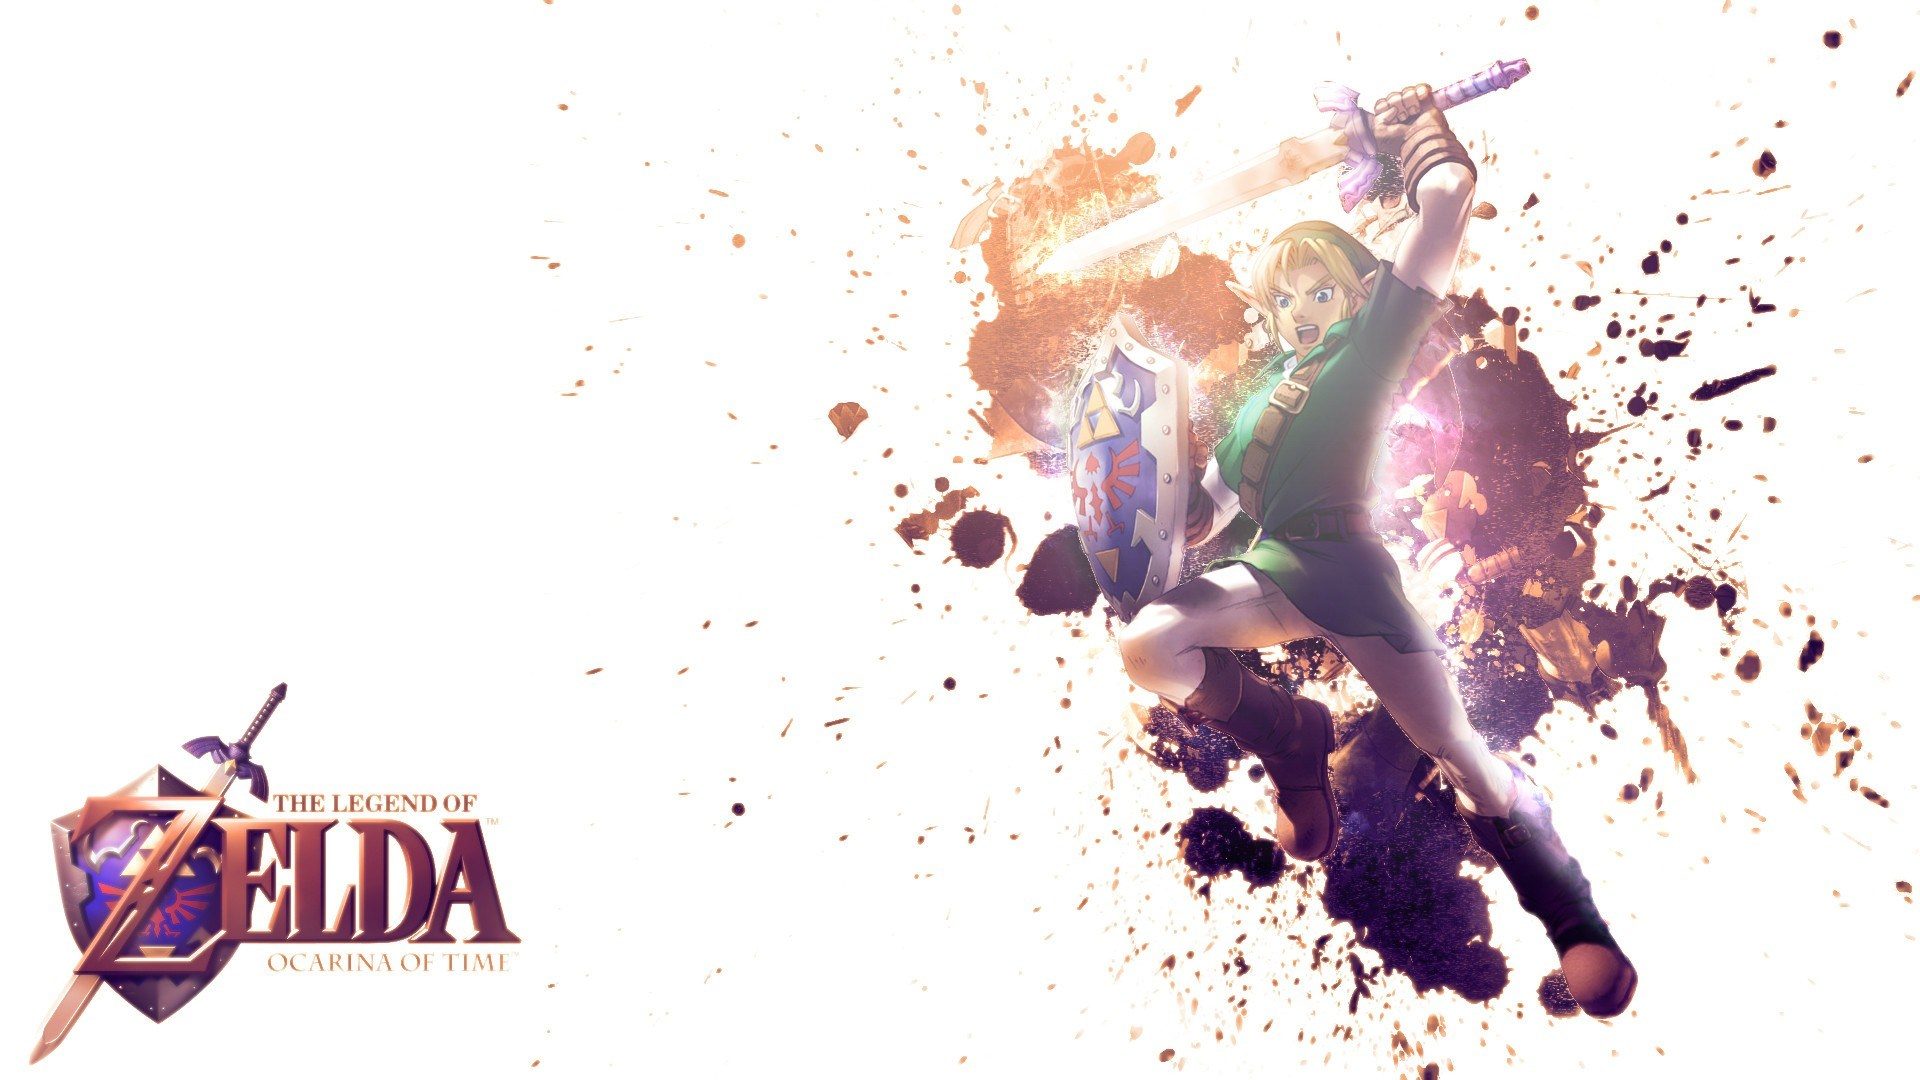 1920x1080-free-desktop-backgrounds-for-the-legend-of-zelda-ocarina-of-time-wallpaper-wp340792